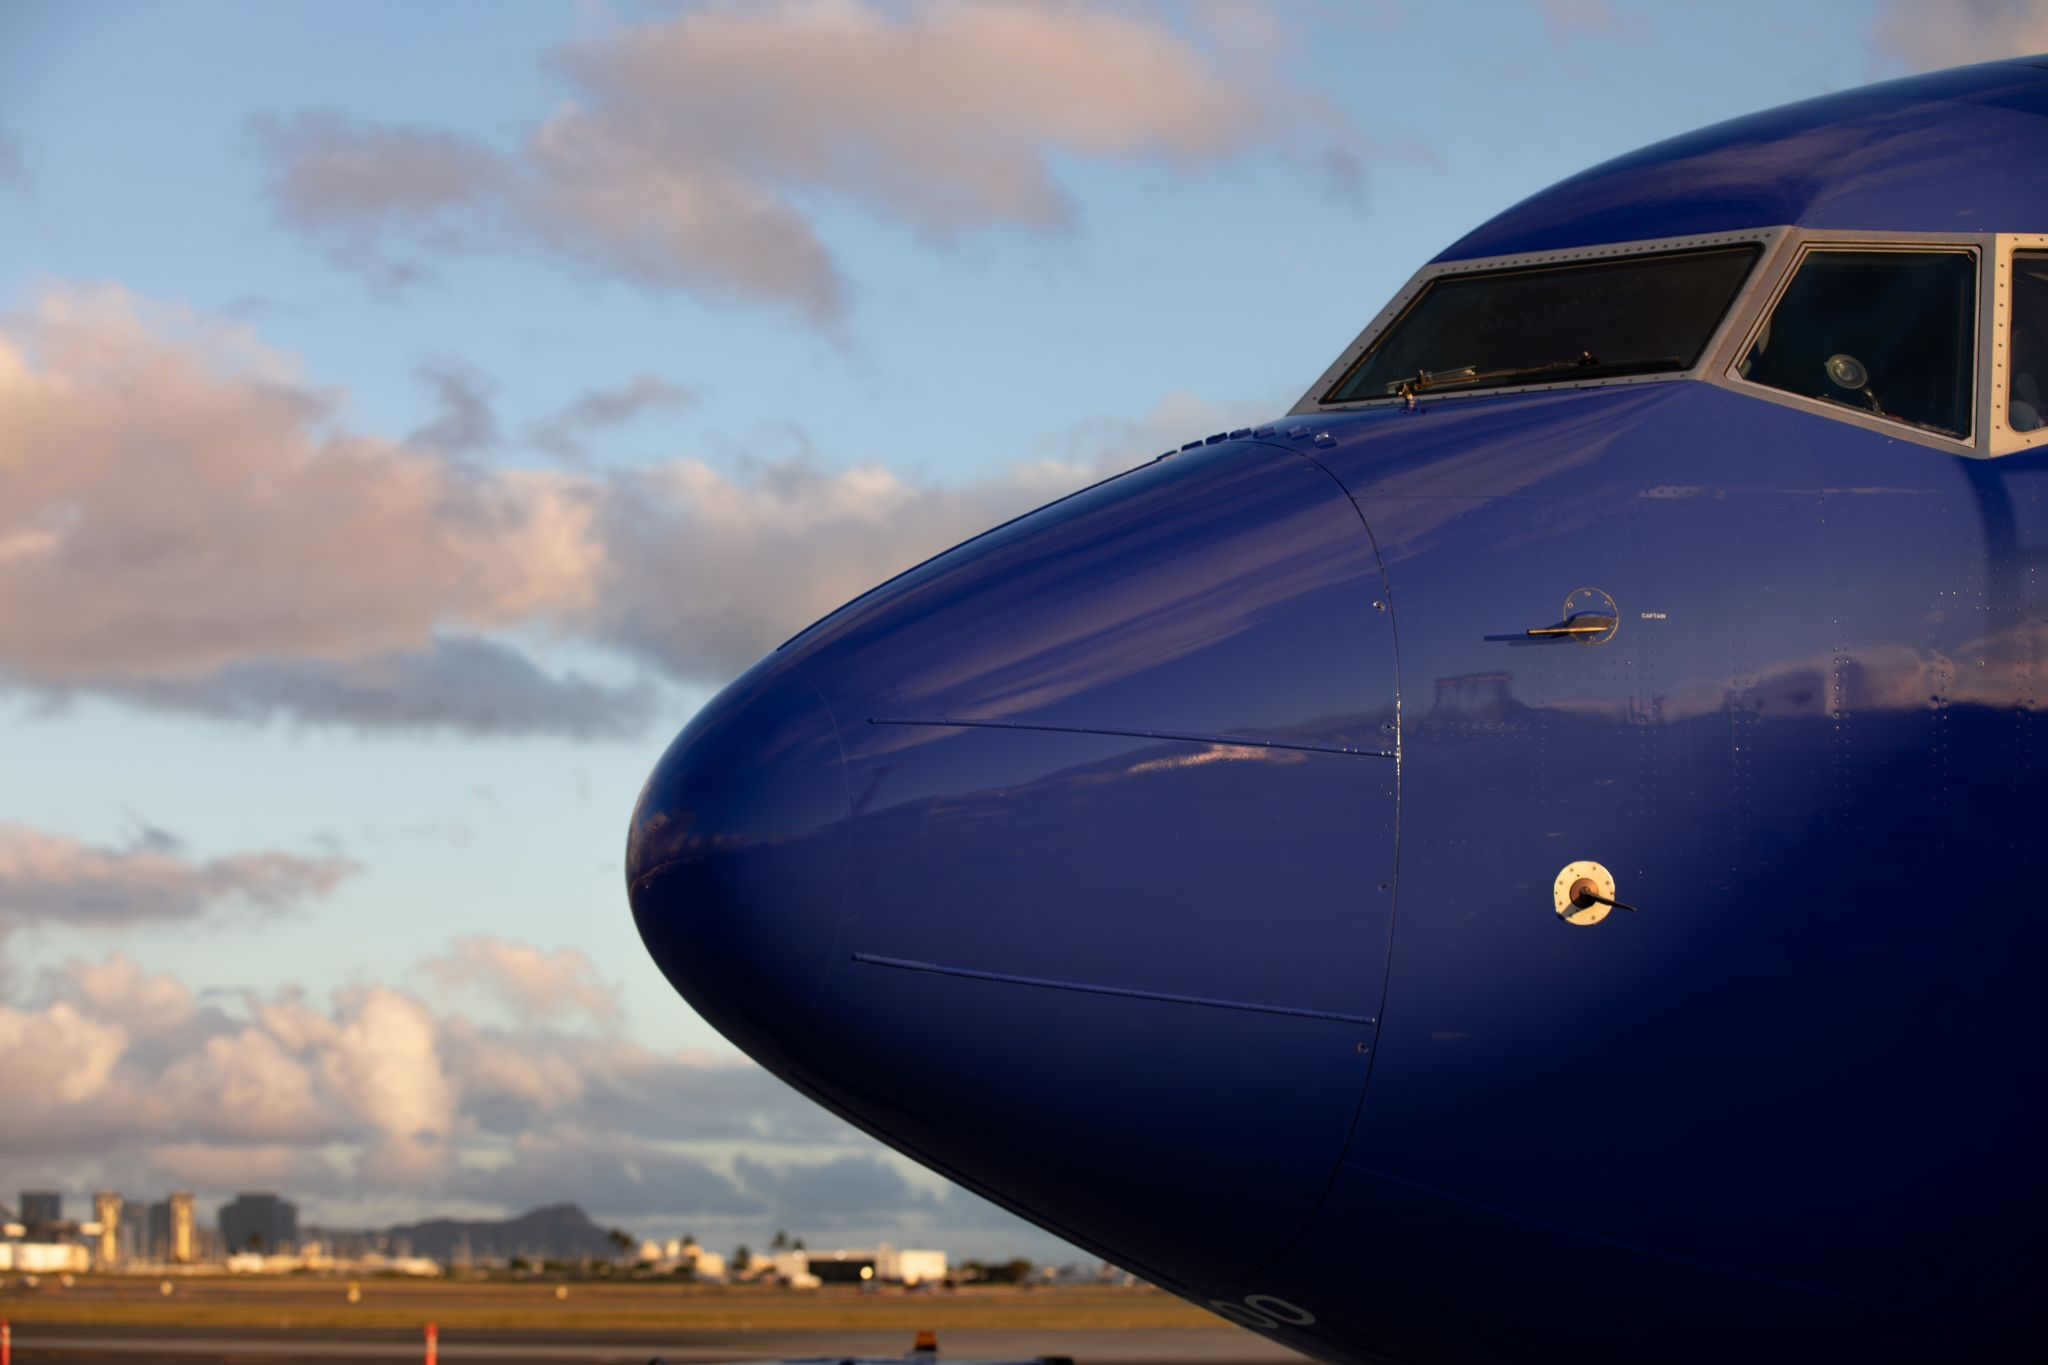 1a0ed2625c37 Southwest Airlines kicks off Hawaii flights with  100 roundtrips ...